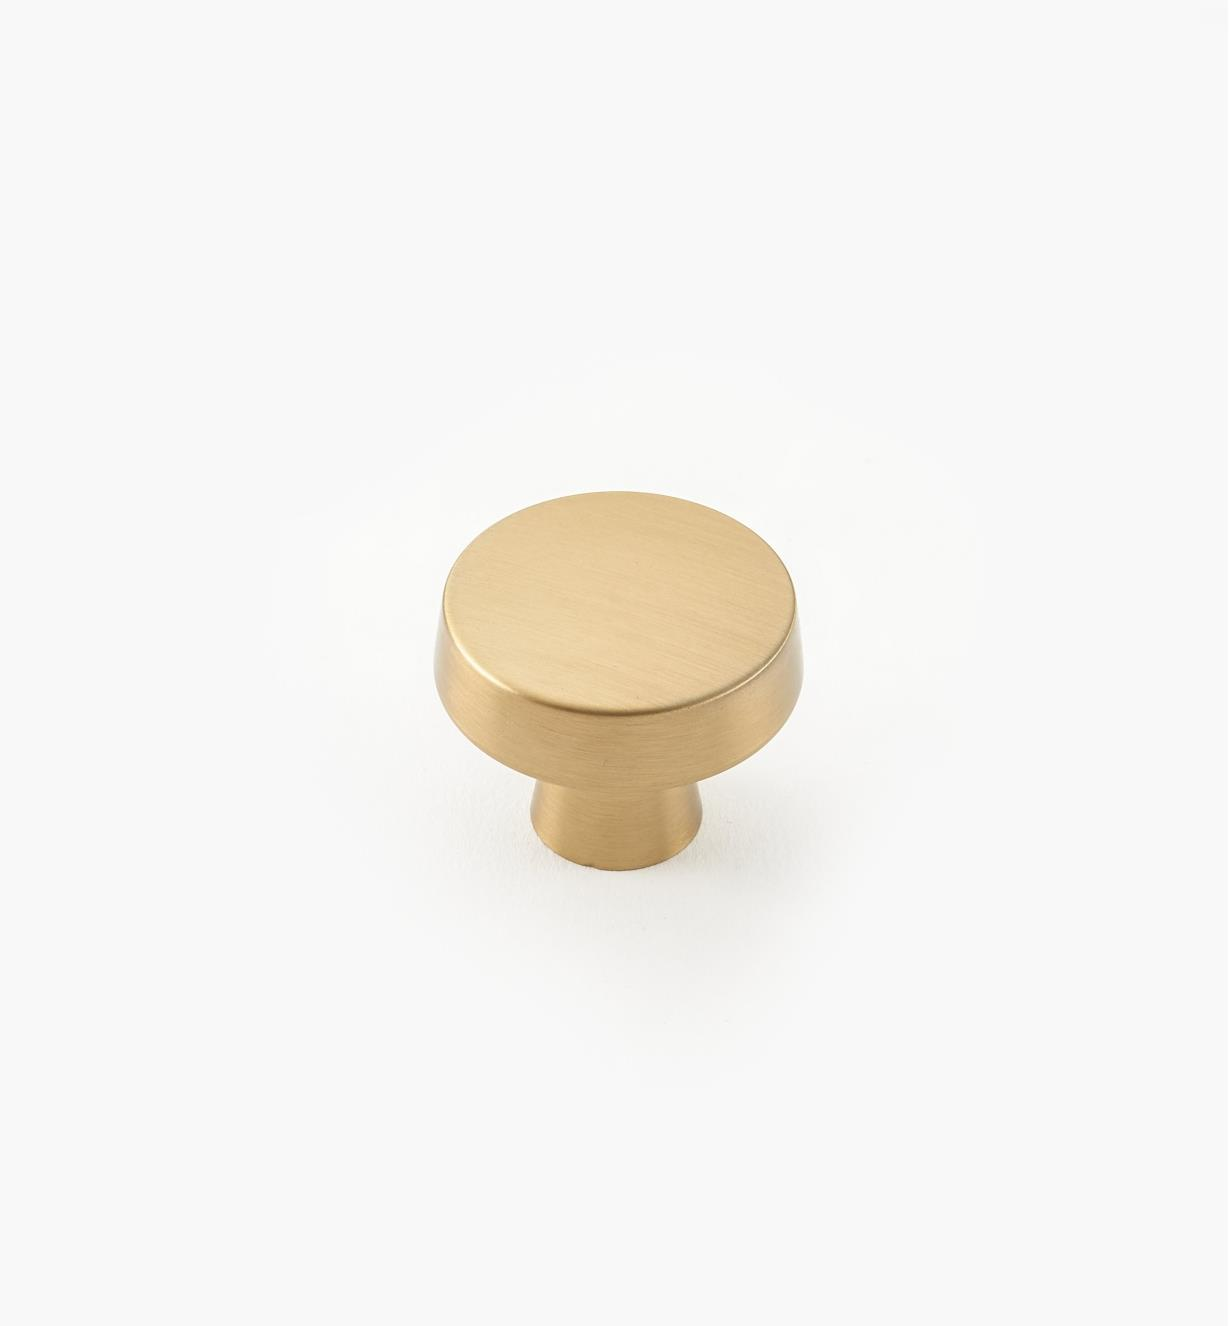 "02A1780 - Blackrock Golden Champagne 1 1/4"" x 1"" Round Knob, each"